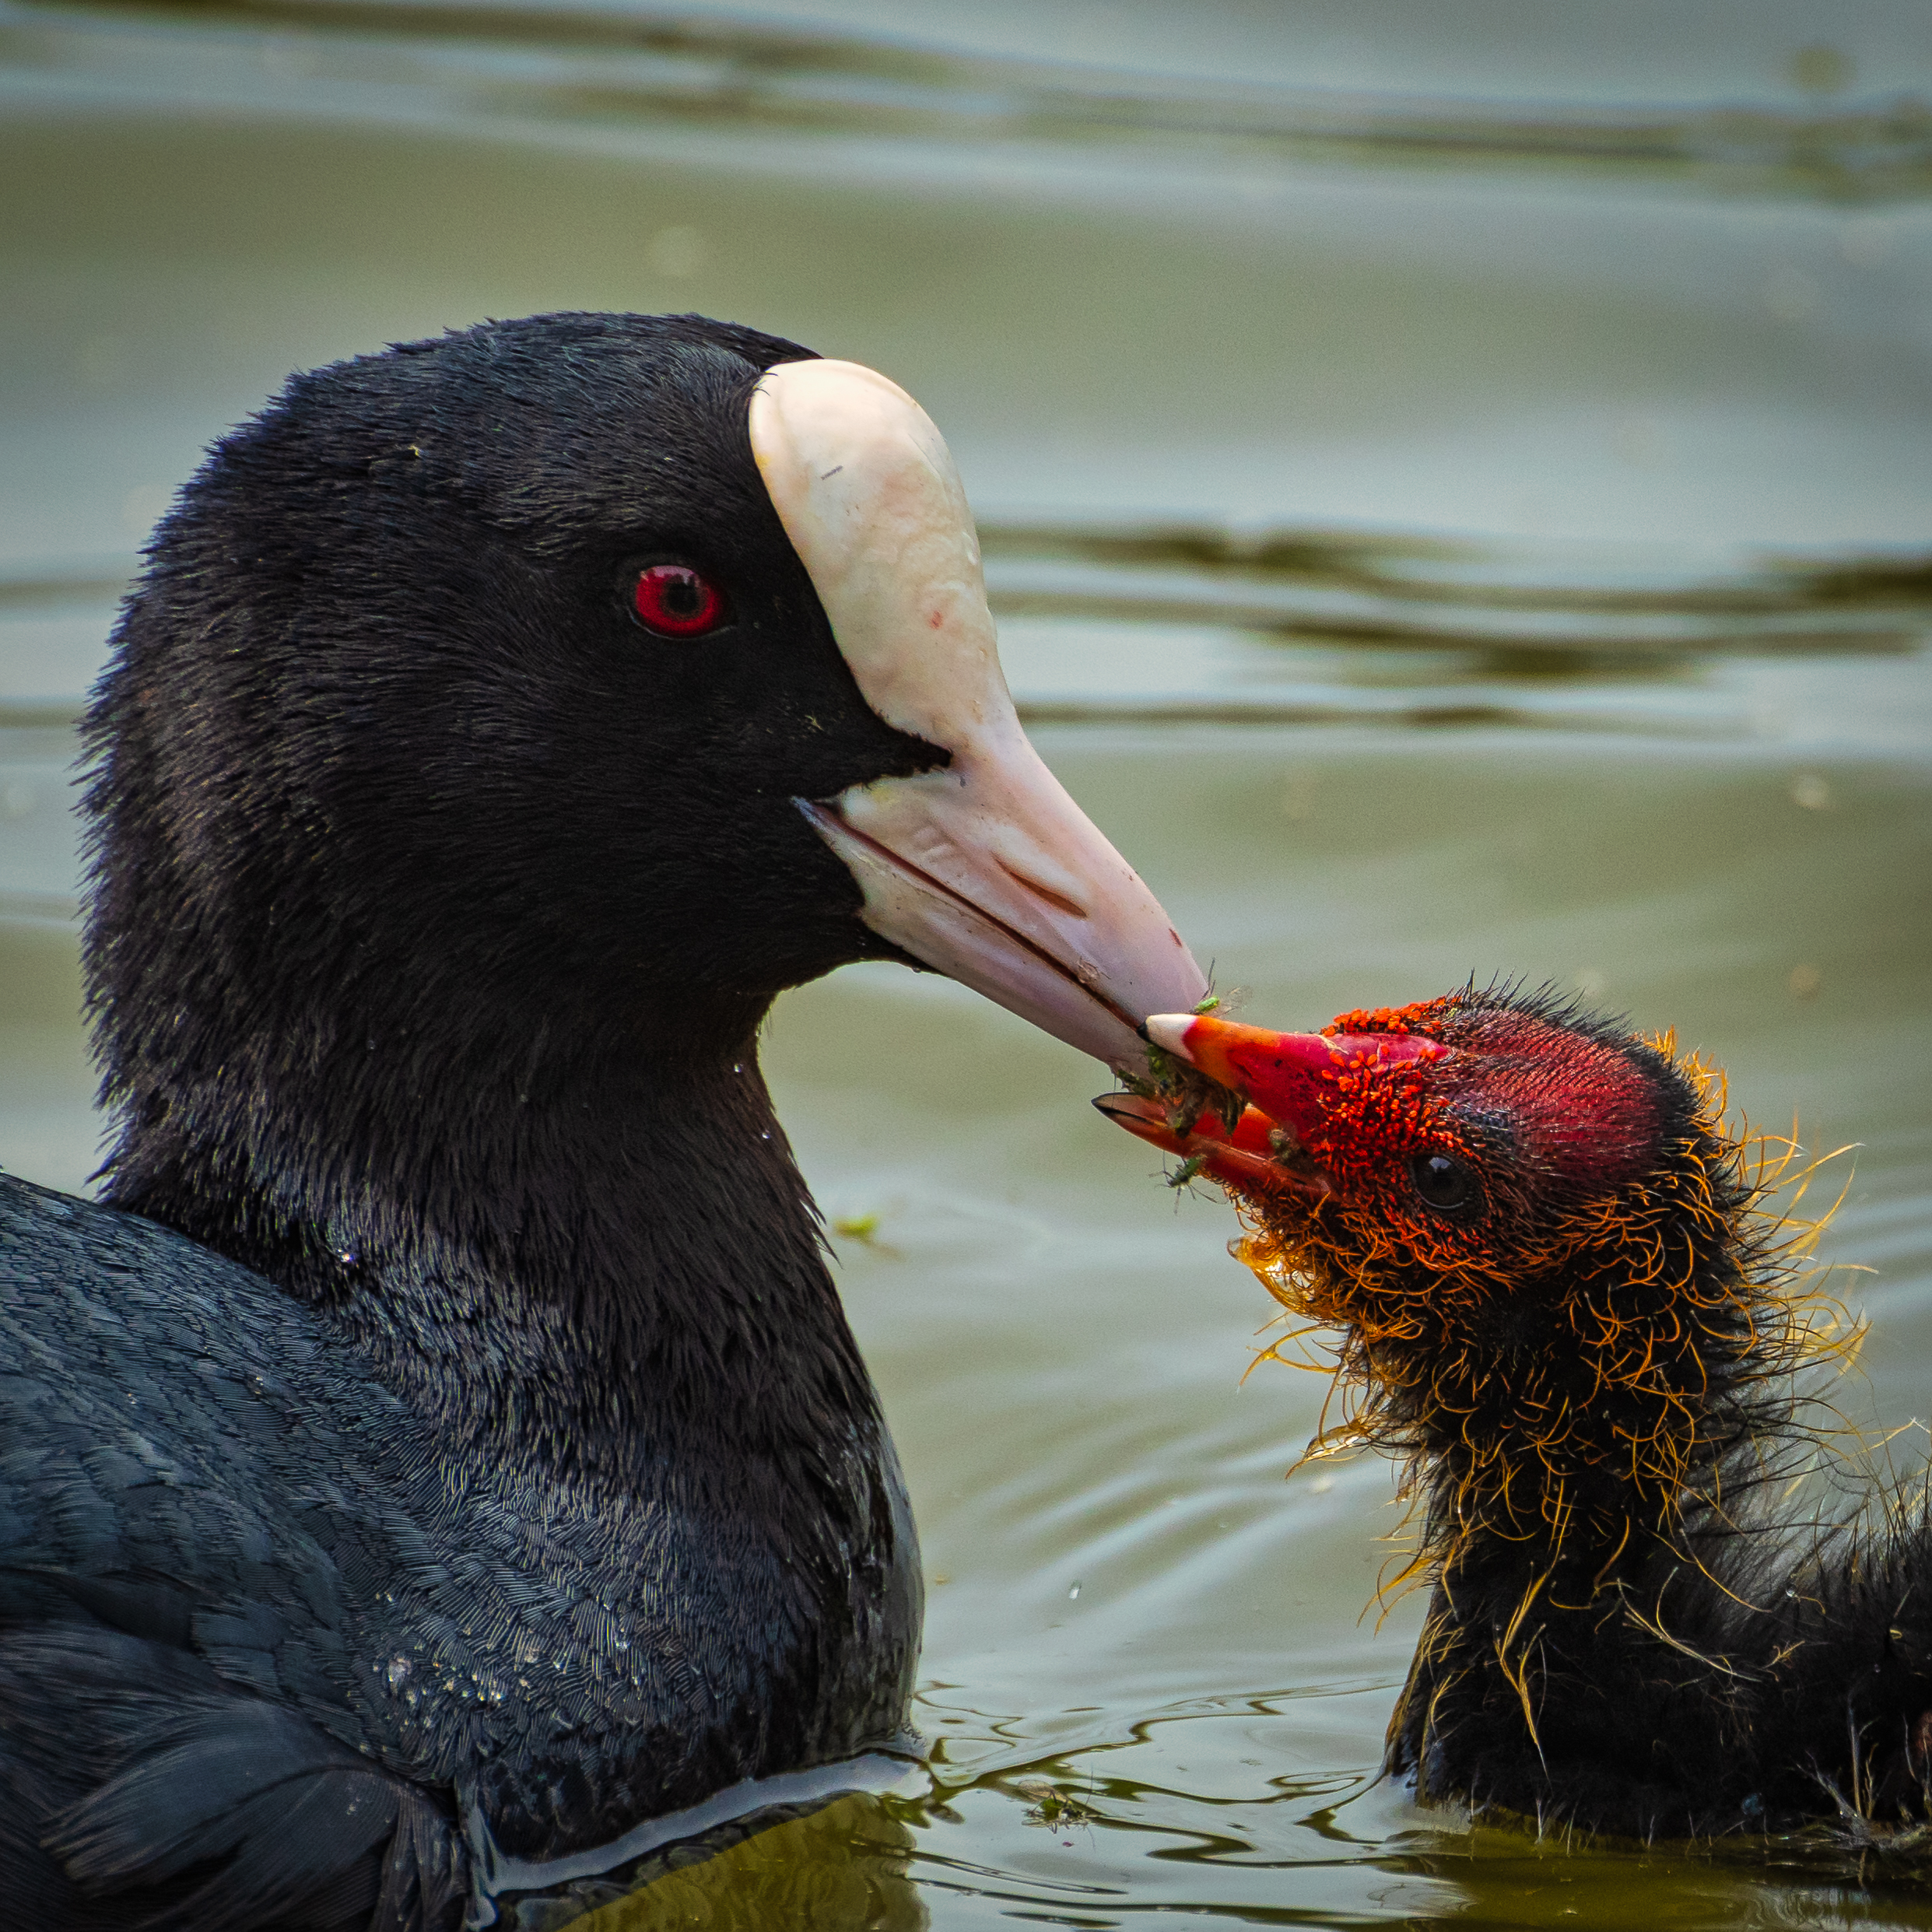 Adult Coot Feeding Chick